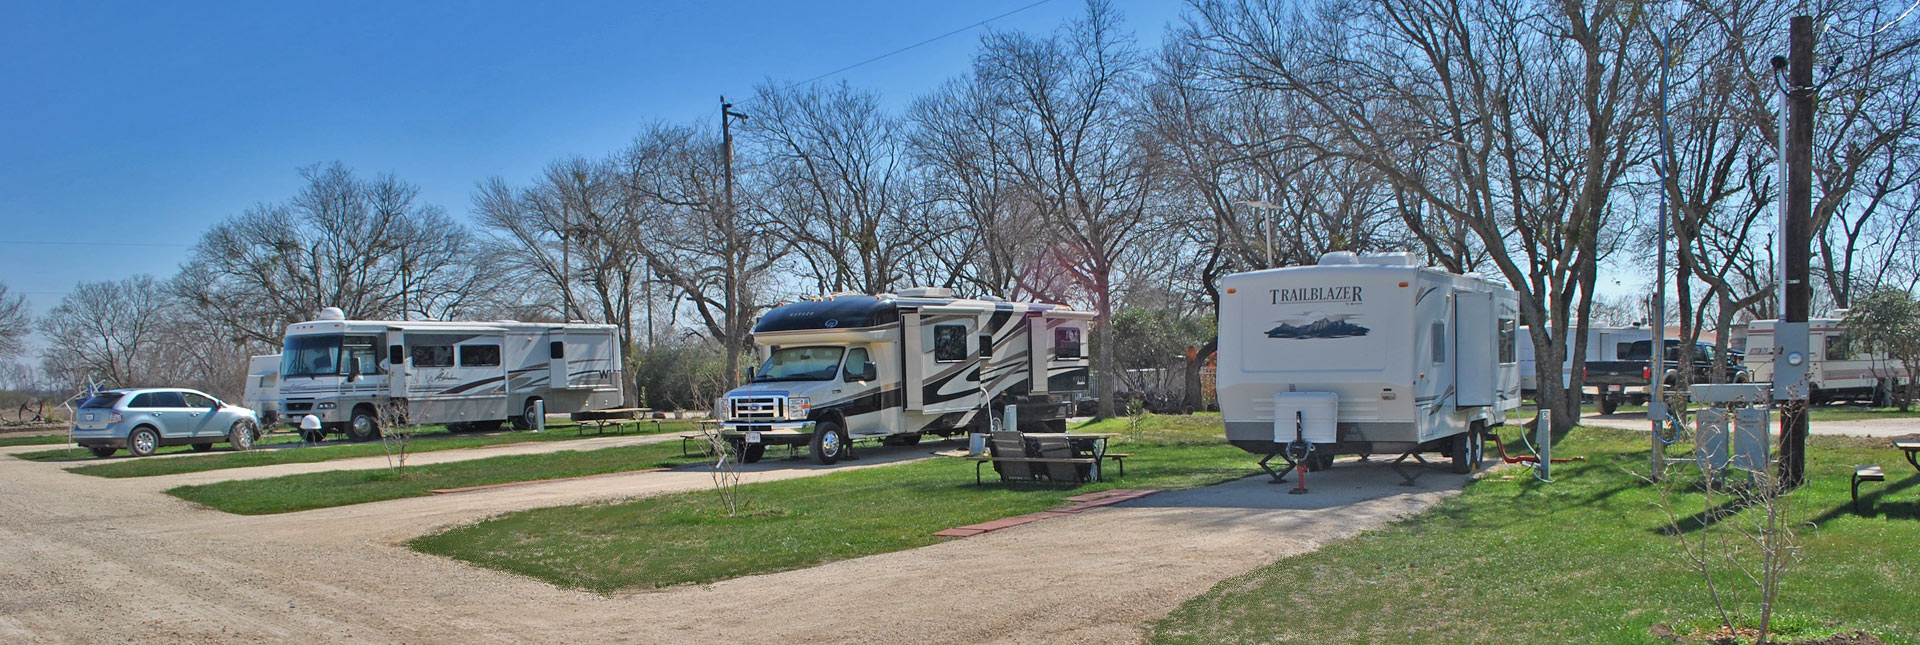 Hidden Valley RV Park